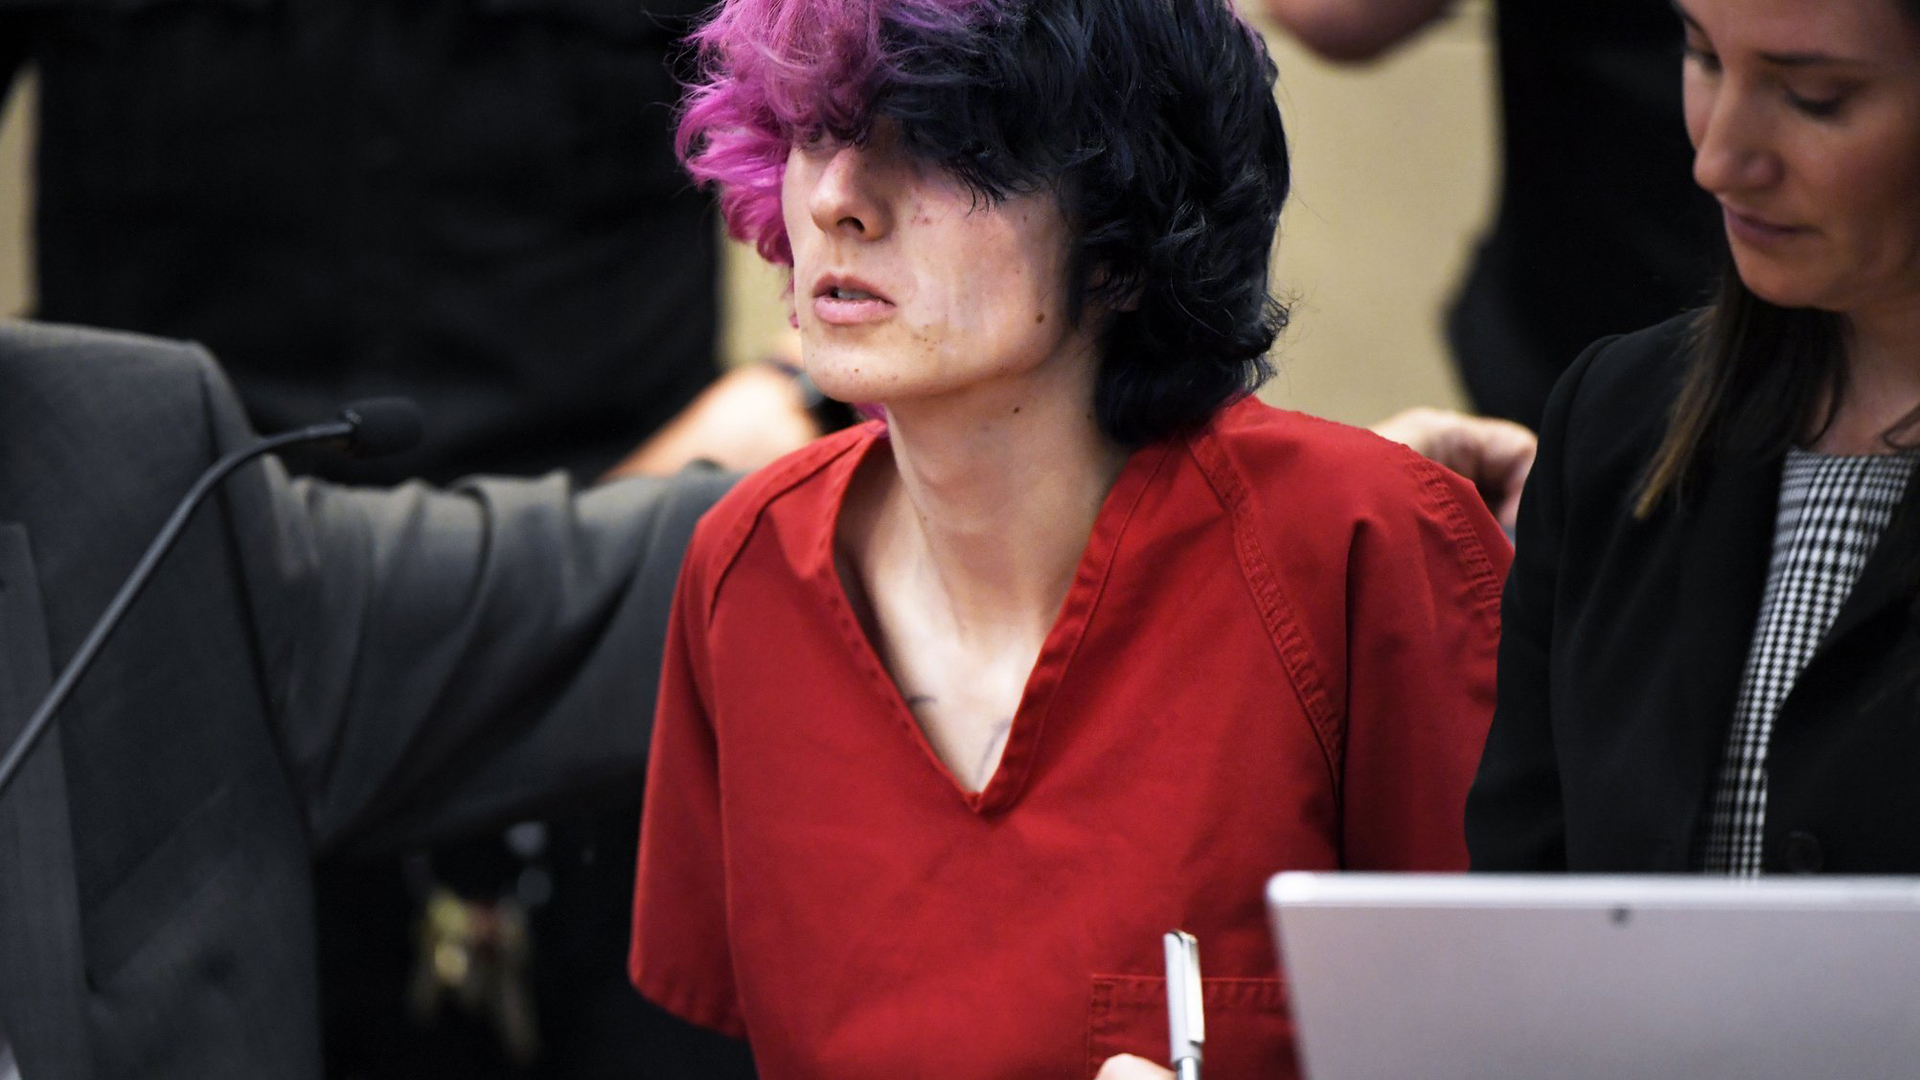 Devon Erickson rarely looked up during a court appearance Wednesday. (Credit: Joe Amon/The Denver Post/Pool/AP)